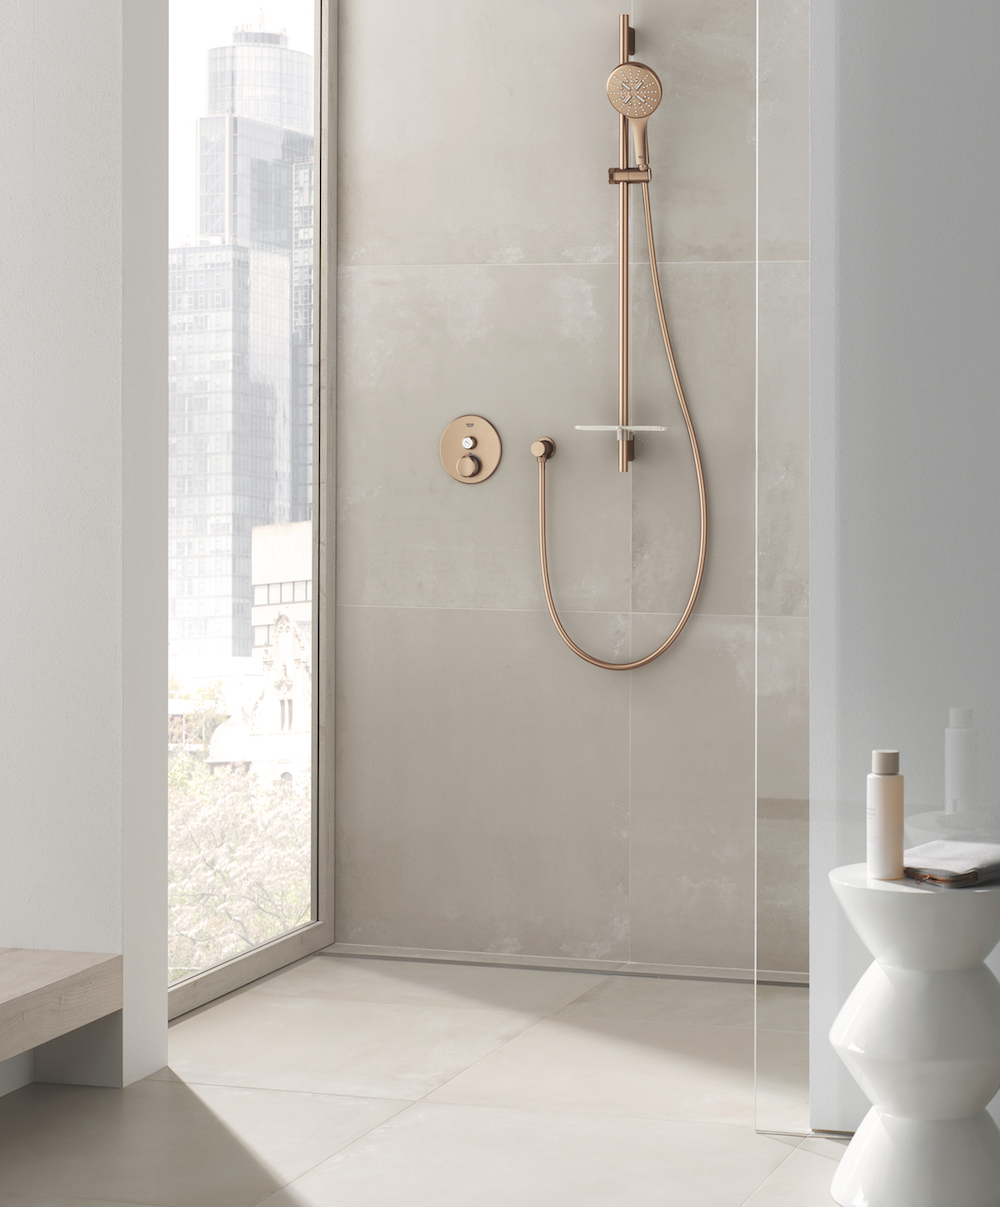 GROHE bathroom lifestyle shot featuring NEW GROHE Rainshower SmartActive 130 handshower